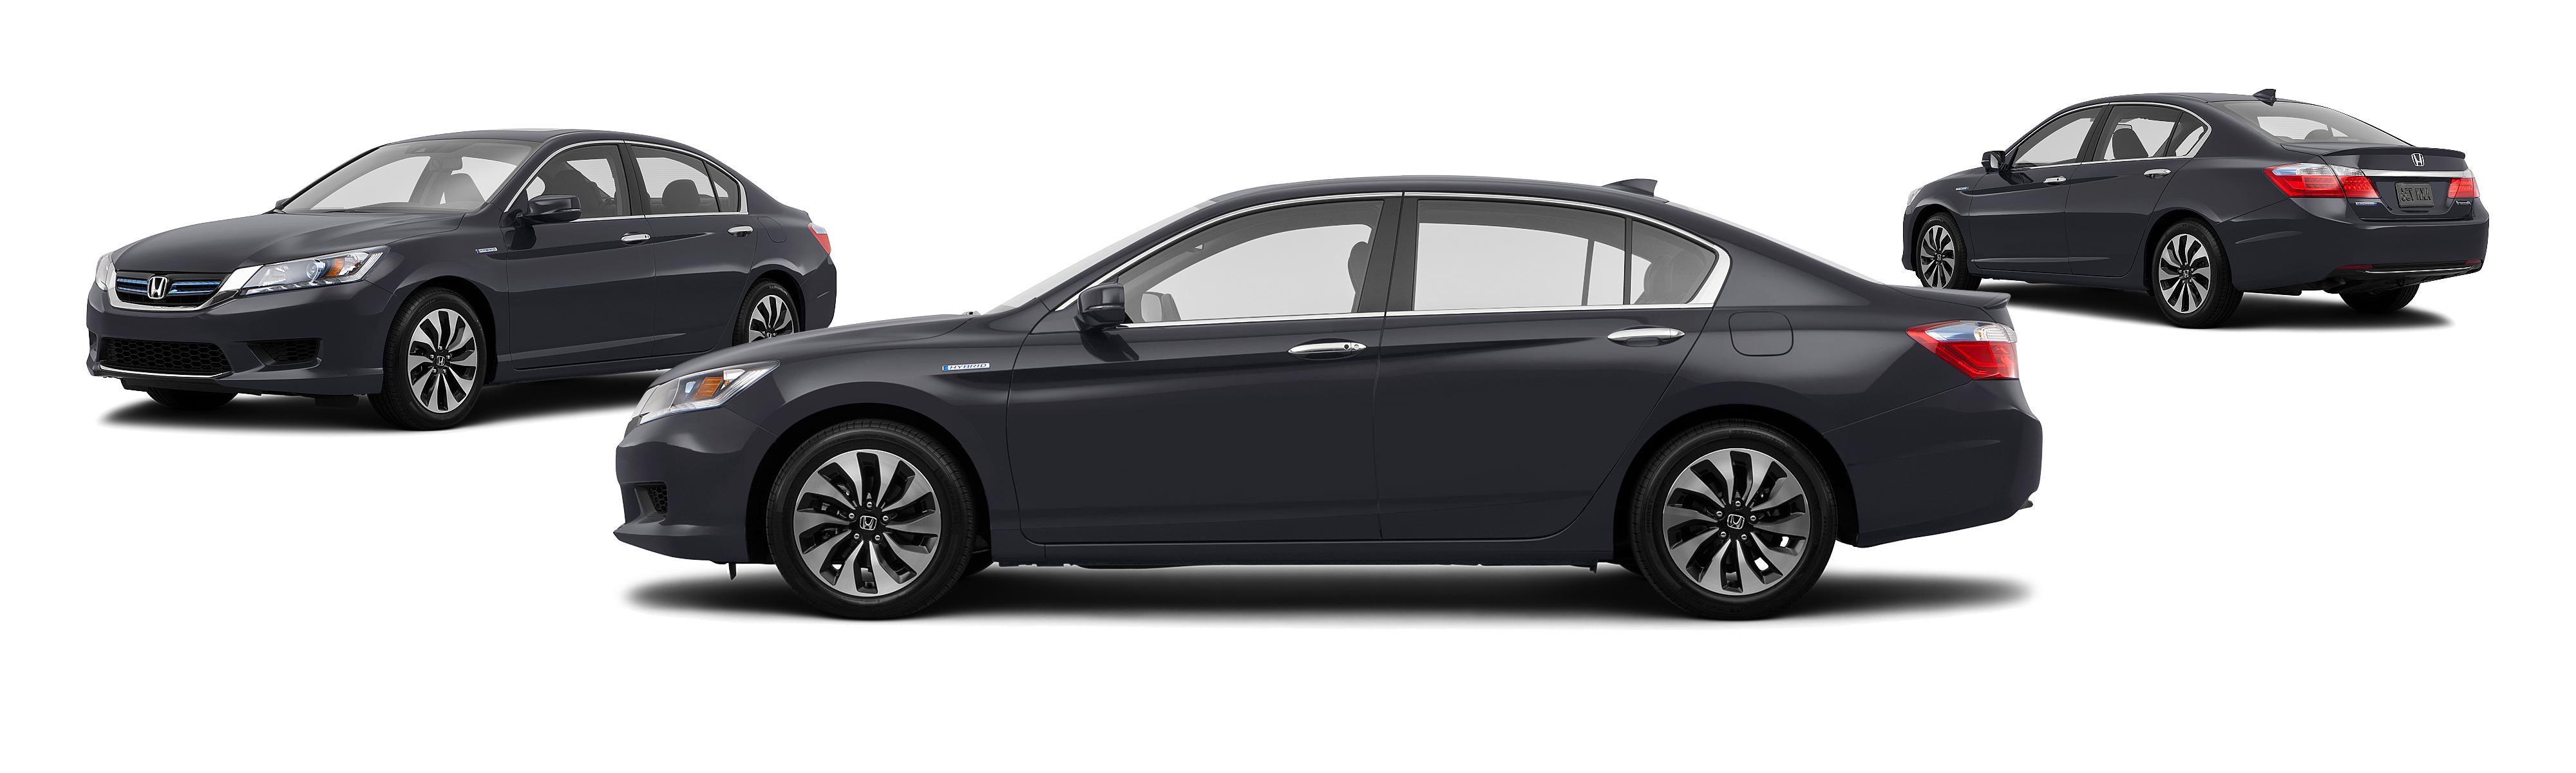 2014-honda-accord-hybrid-ex-l-4dr-sedan-modern-steel-metallic-composite-large Interesting Info About 2013 Honda Accord Exl with Terrific Pictures Cars Review